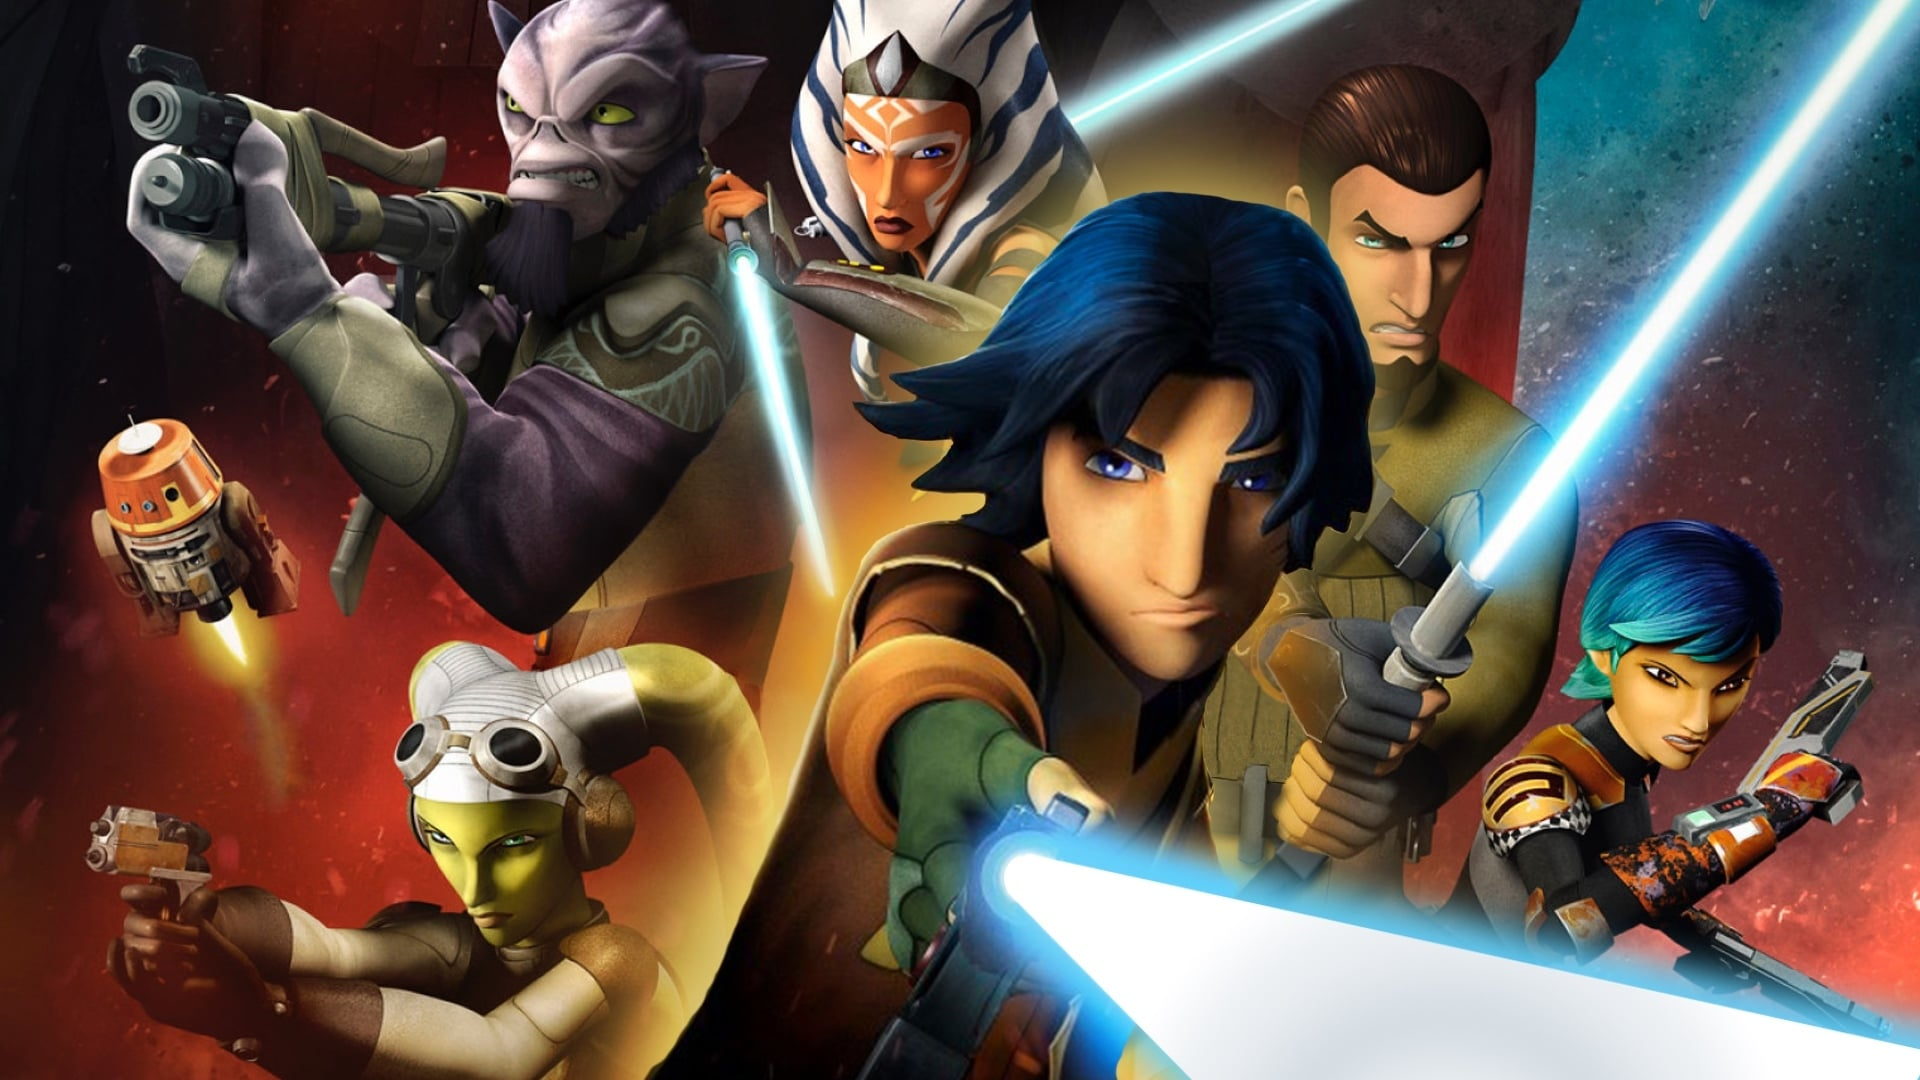 Disney Star Wars Rebels